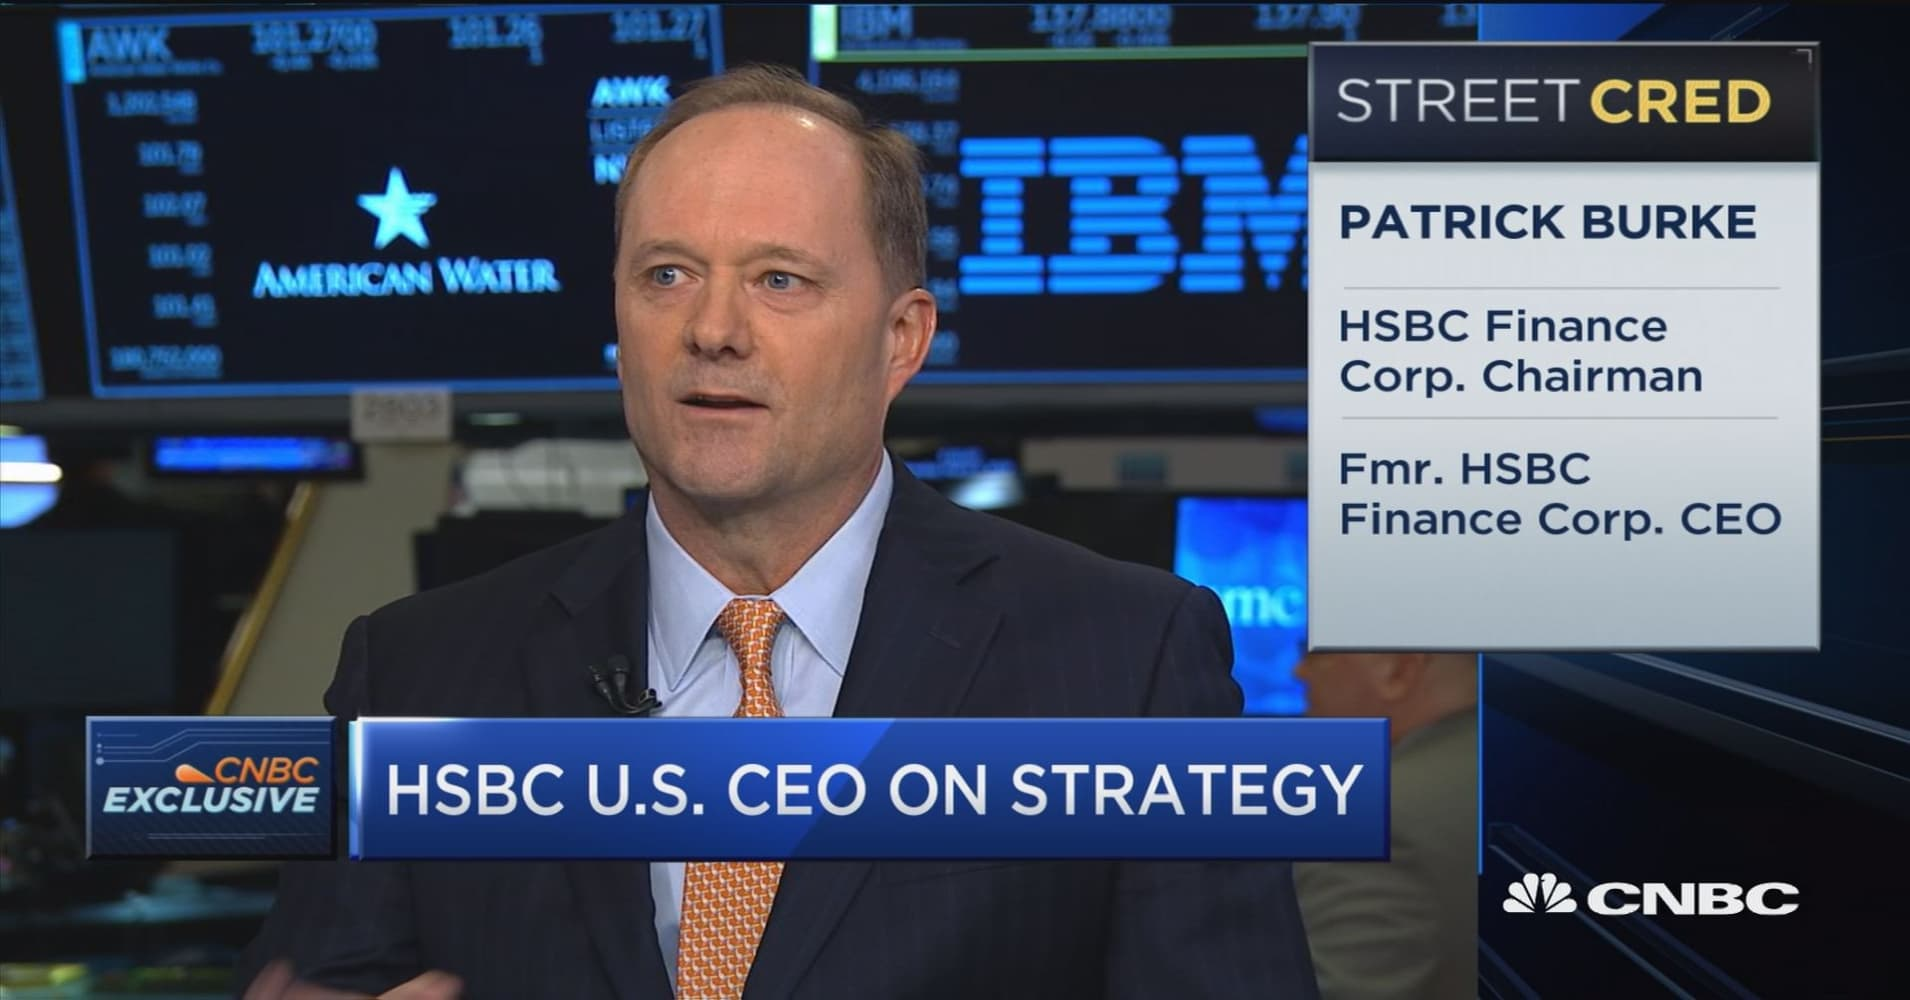 We have a relatively light, unsecured portfolio in the credit card  business, says HSBC USA CEO